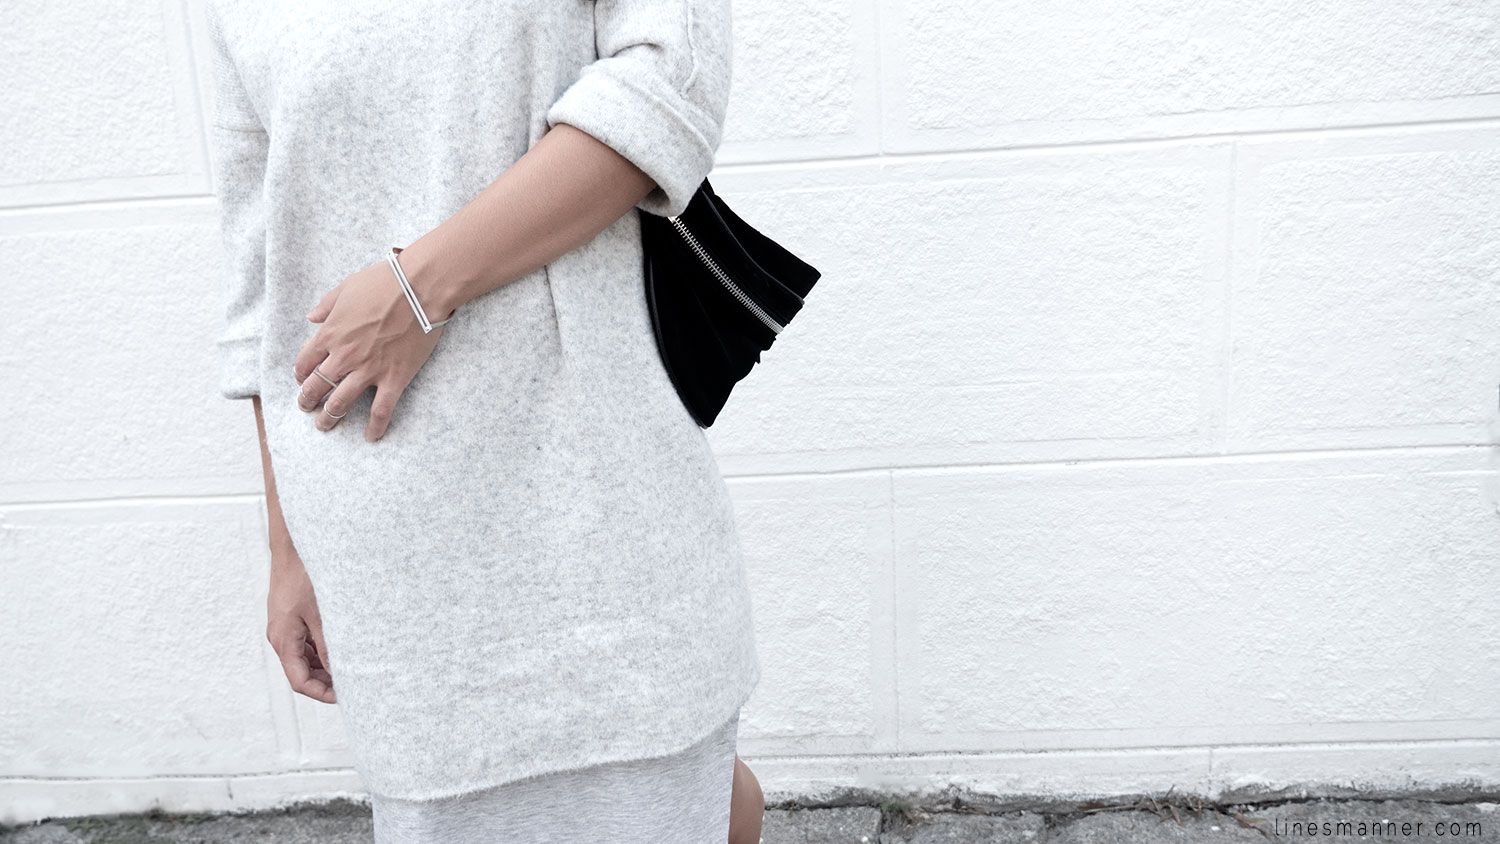 Lines-Manner-Fashion-Collaboration-The_Demeler-Monochrome-Grey_on_Grey-Fresh-Brightly-Outfit-Simplicity-Details-Trend-Minimalist-Flowy-Layering-Sleeves-Sweater_Dress-13